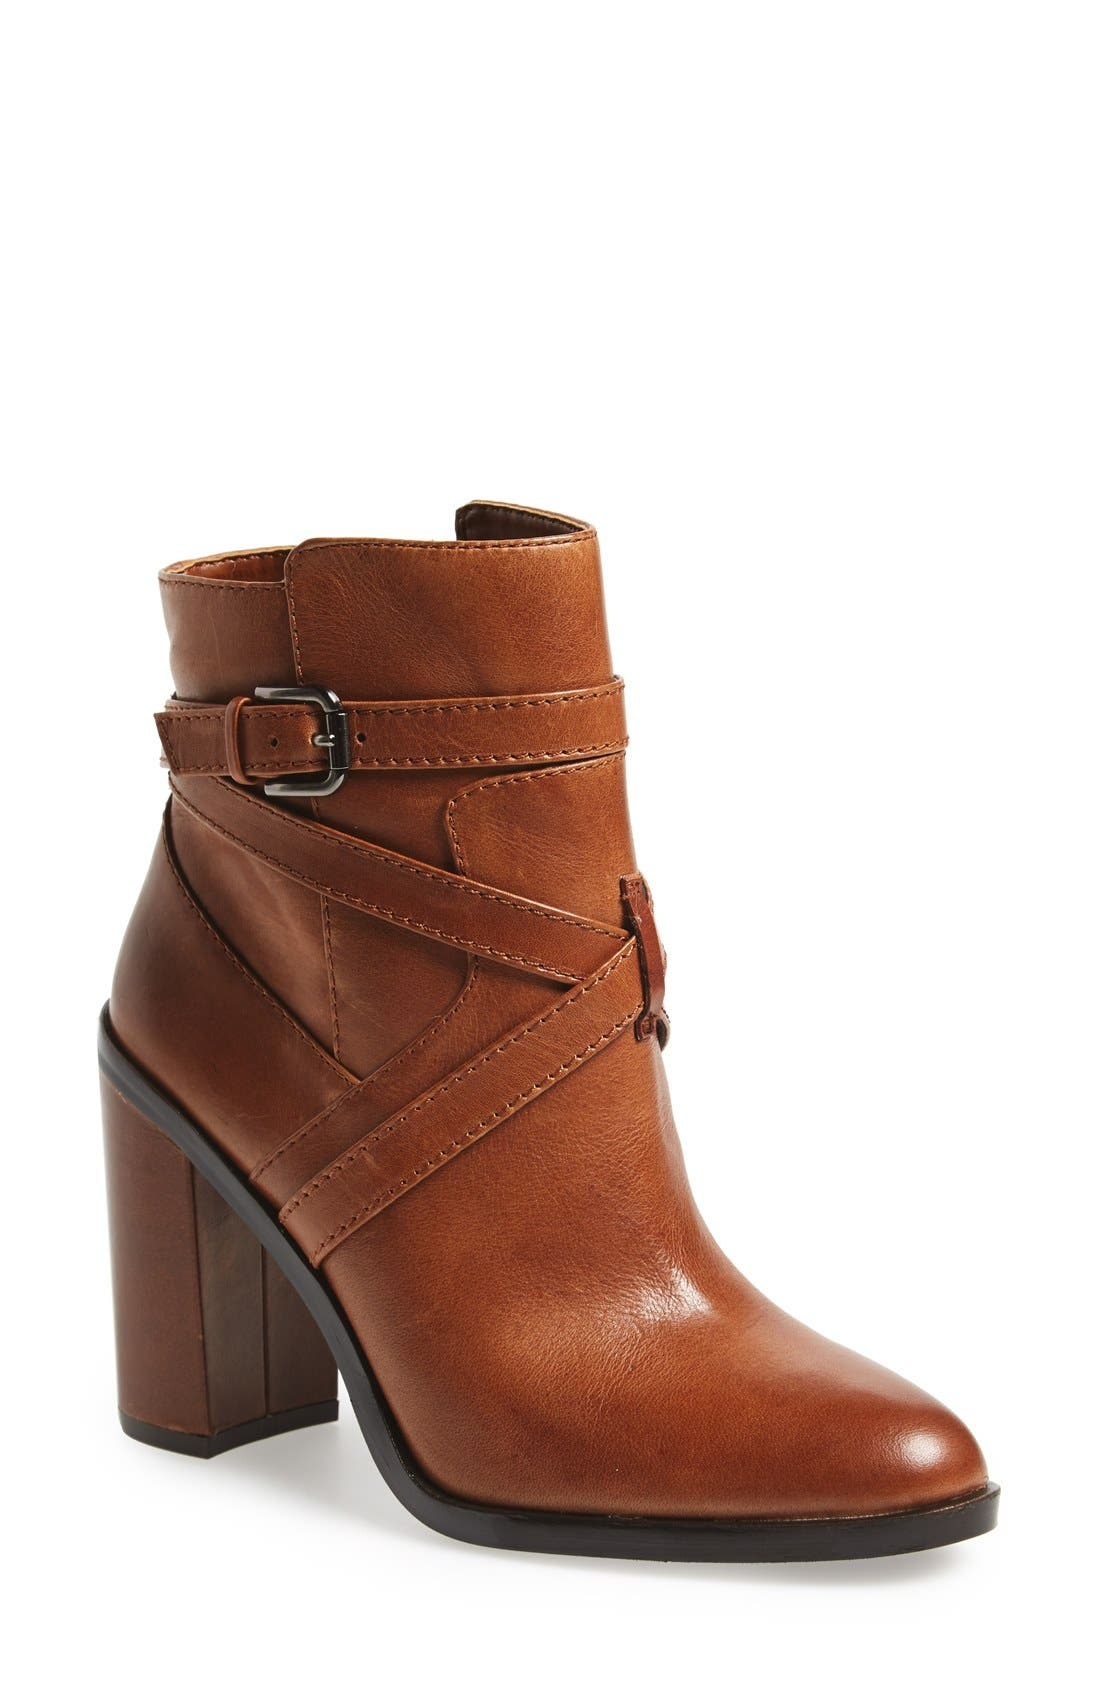 Alternate Image 1 Selected - Vince Camuto 'Gravell' Belted Boot (Women)